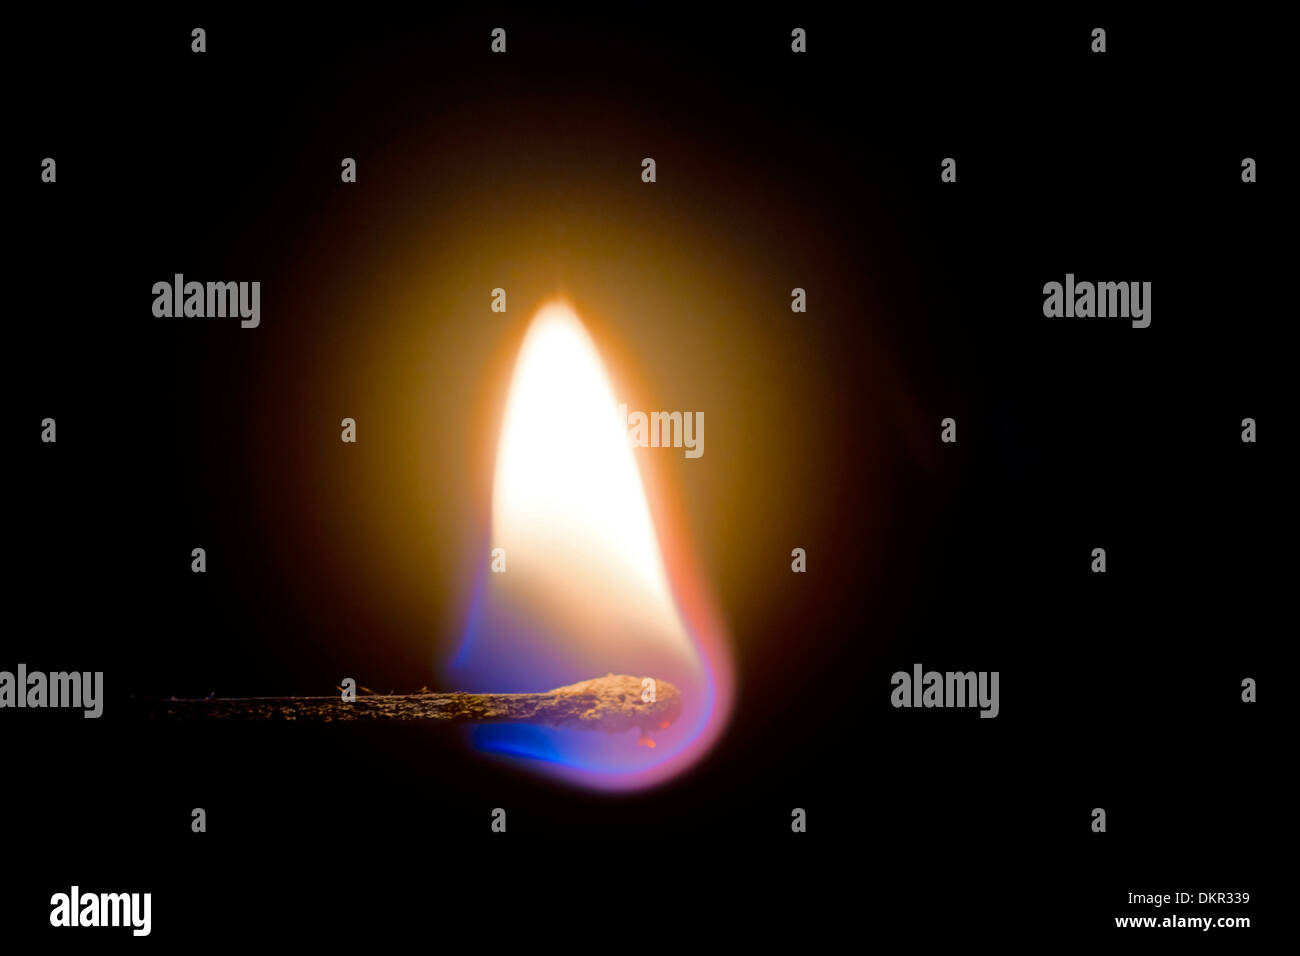 light, kindle, burn, detail, individually, fires, flame, glow, heat, close-up, match, warmth, hot, - Stock Image